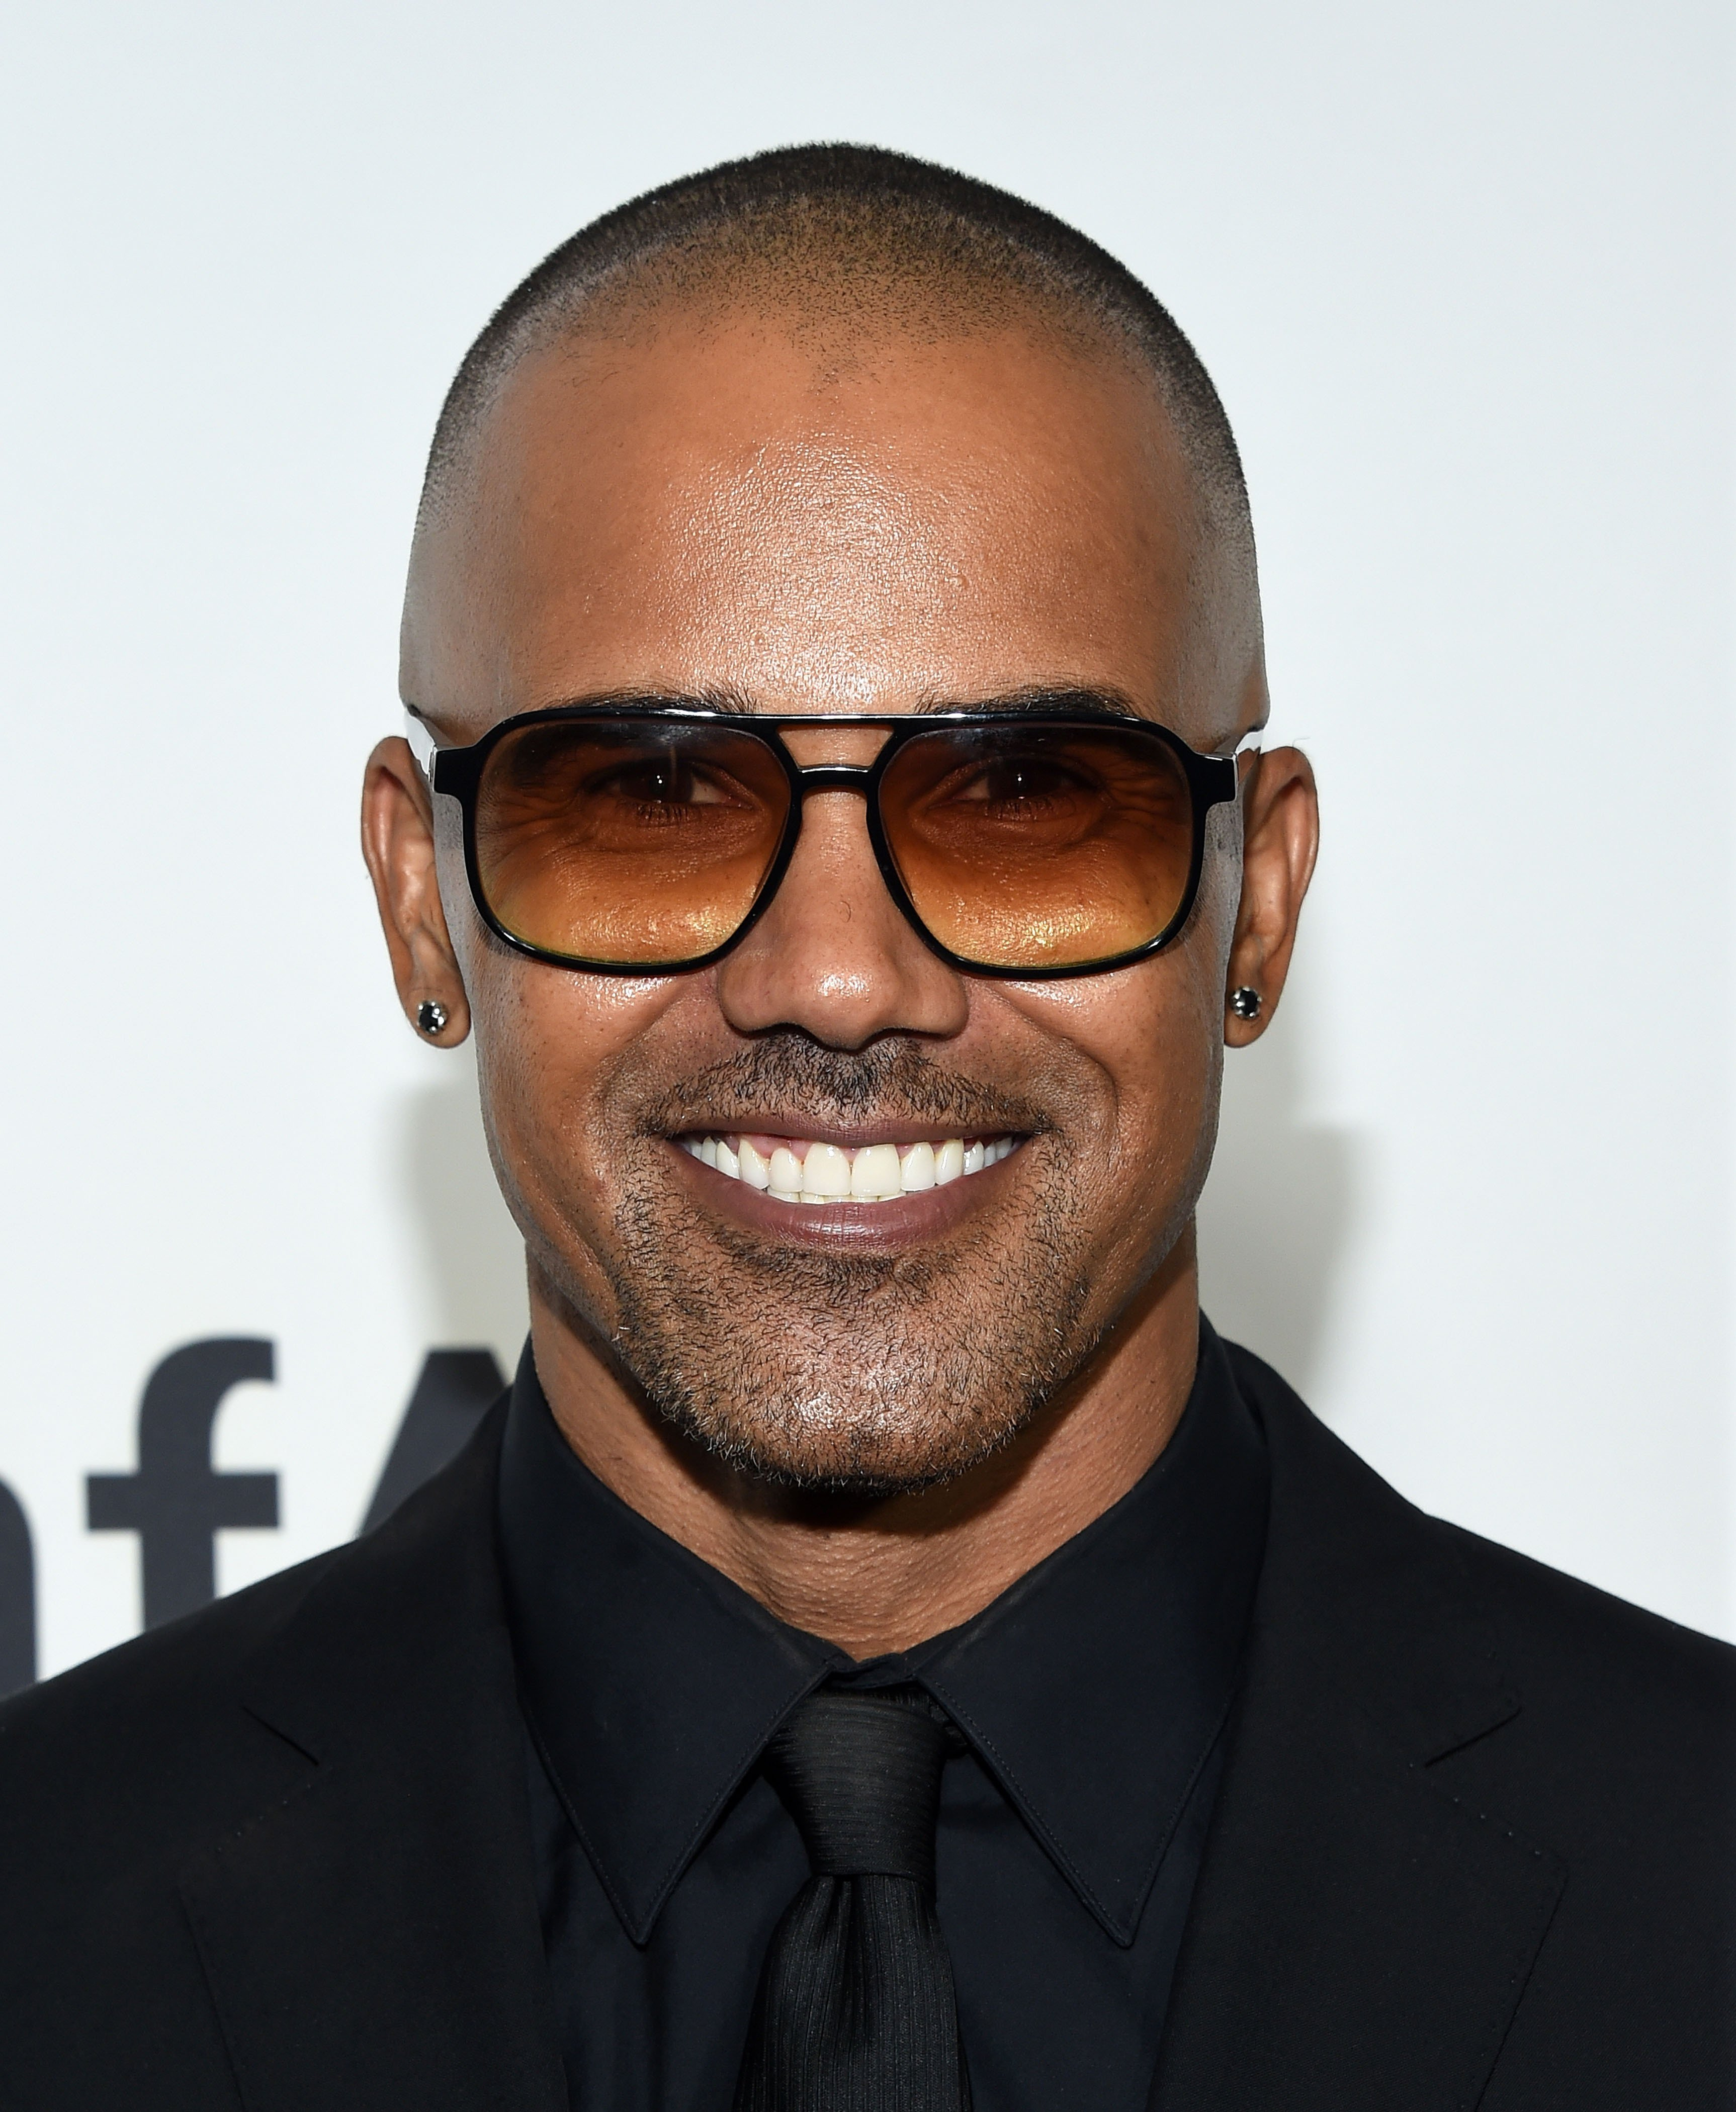 Shemar Moore at amfAR's Inspiration Gala Los Angeles on October 27, 2016 in Hollywood, California | Photo: Getty Images